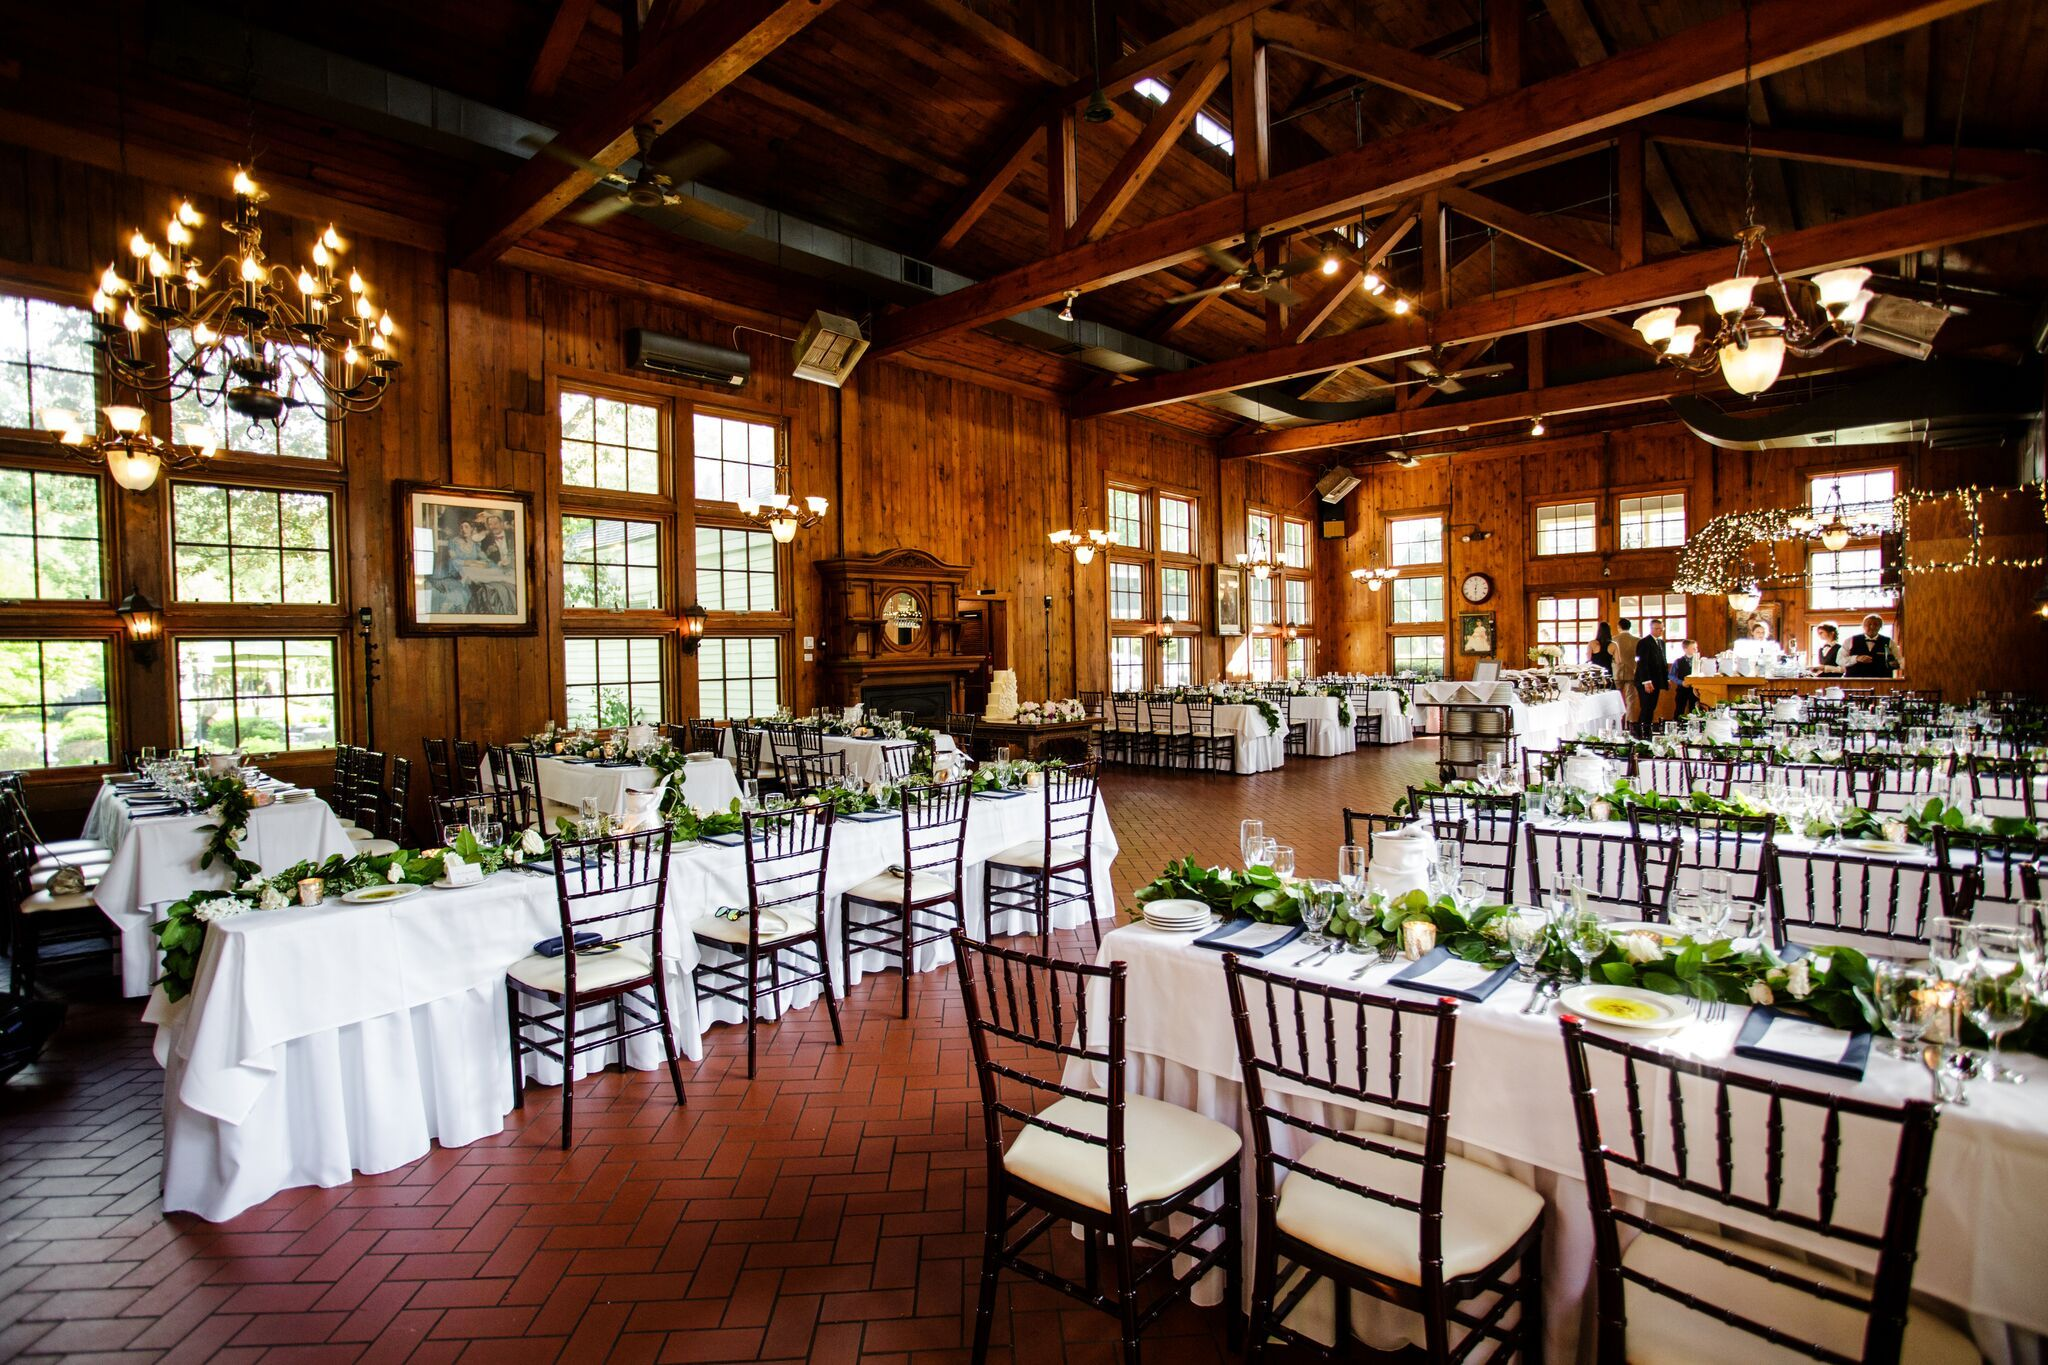 Historial Venue At Wellers Carriage House Saline Michigan So